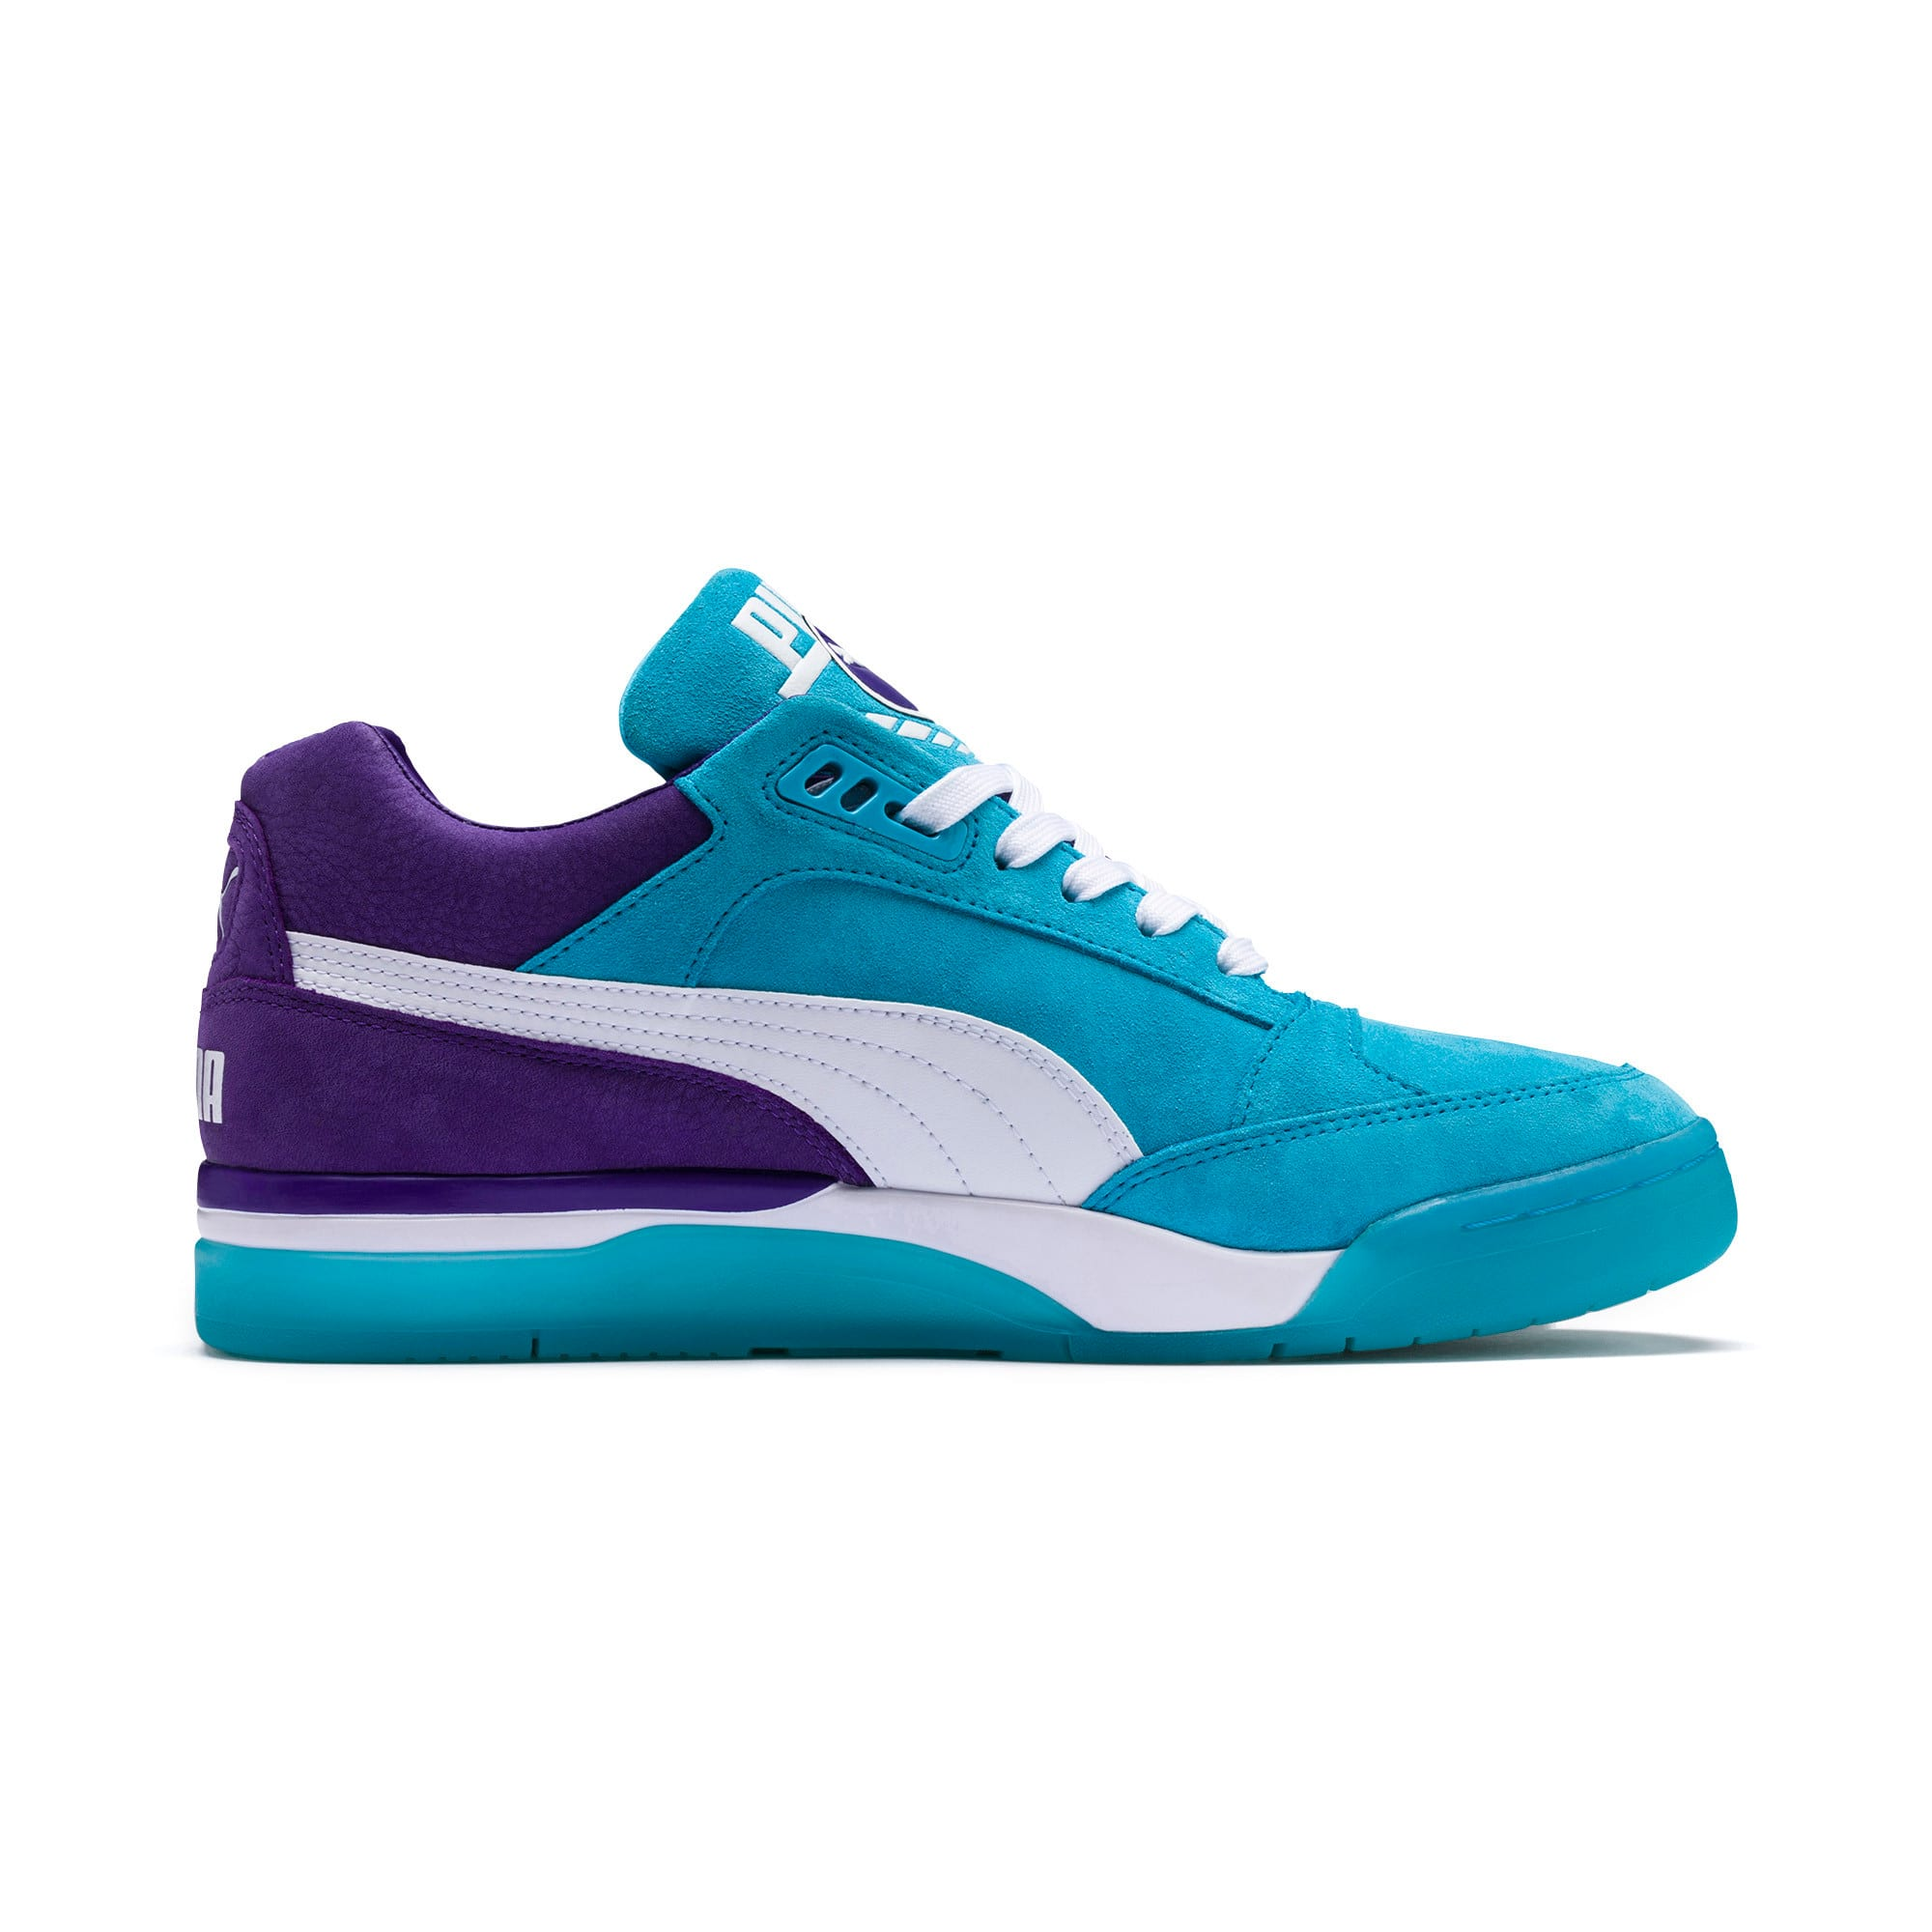 Thumbnail 5 of Palace Guard Queen City Sneakers, Blue Atoll-Prism Violet, medium